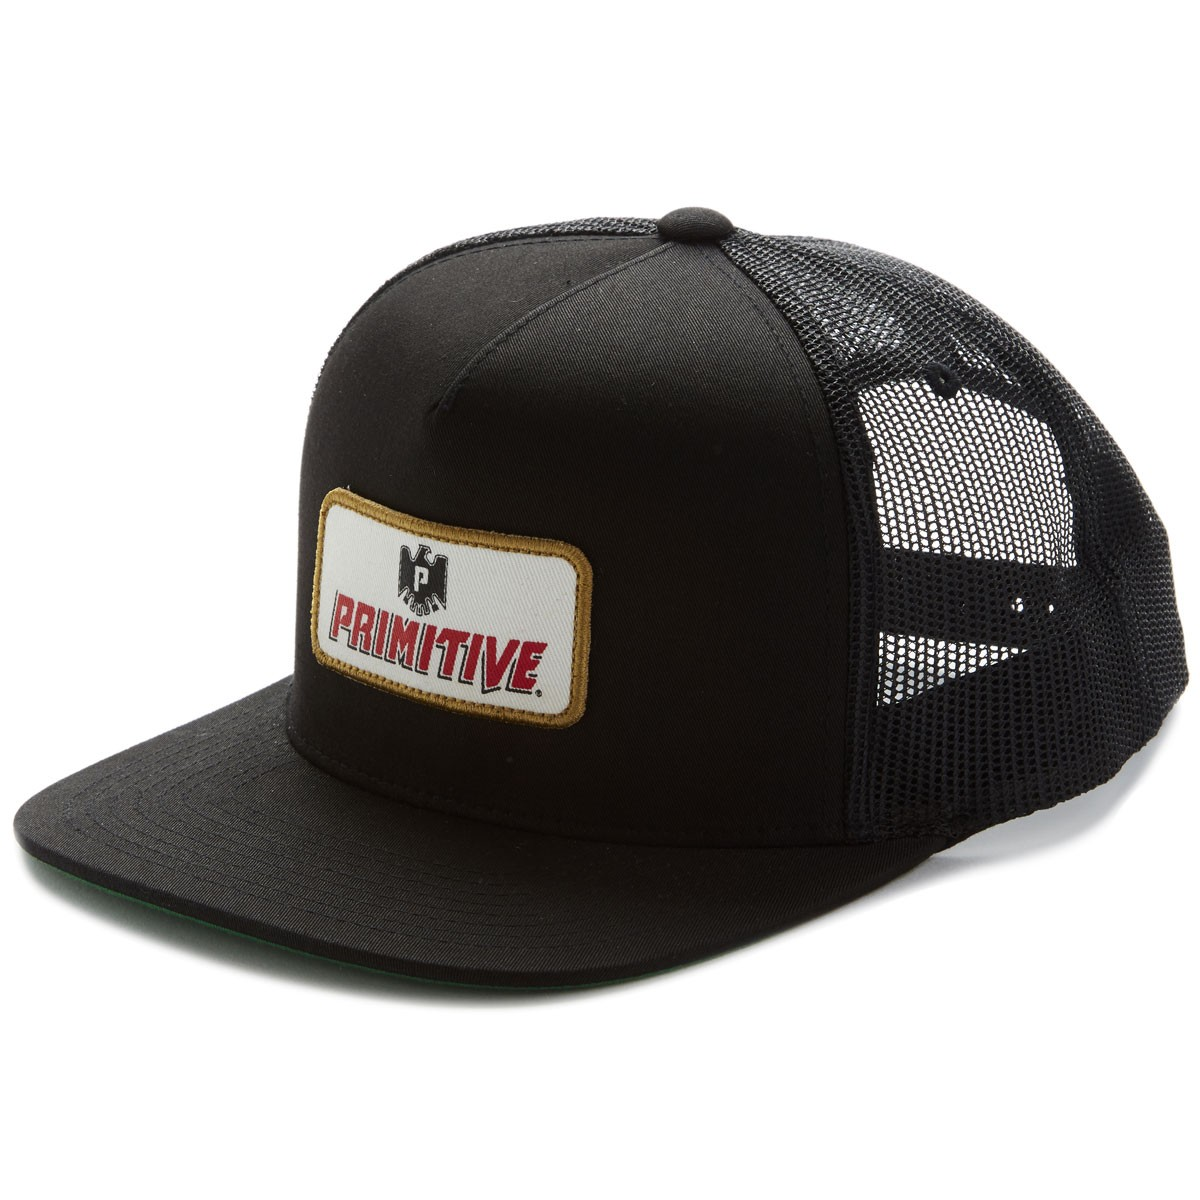 Primitive Cerveza Trucker Hat - Black 40211cfd694